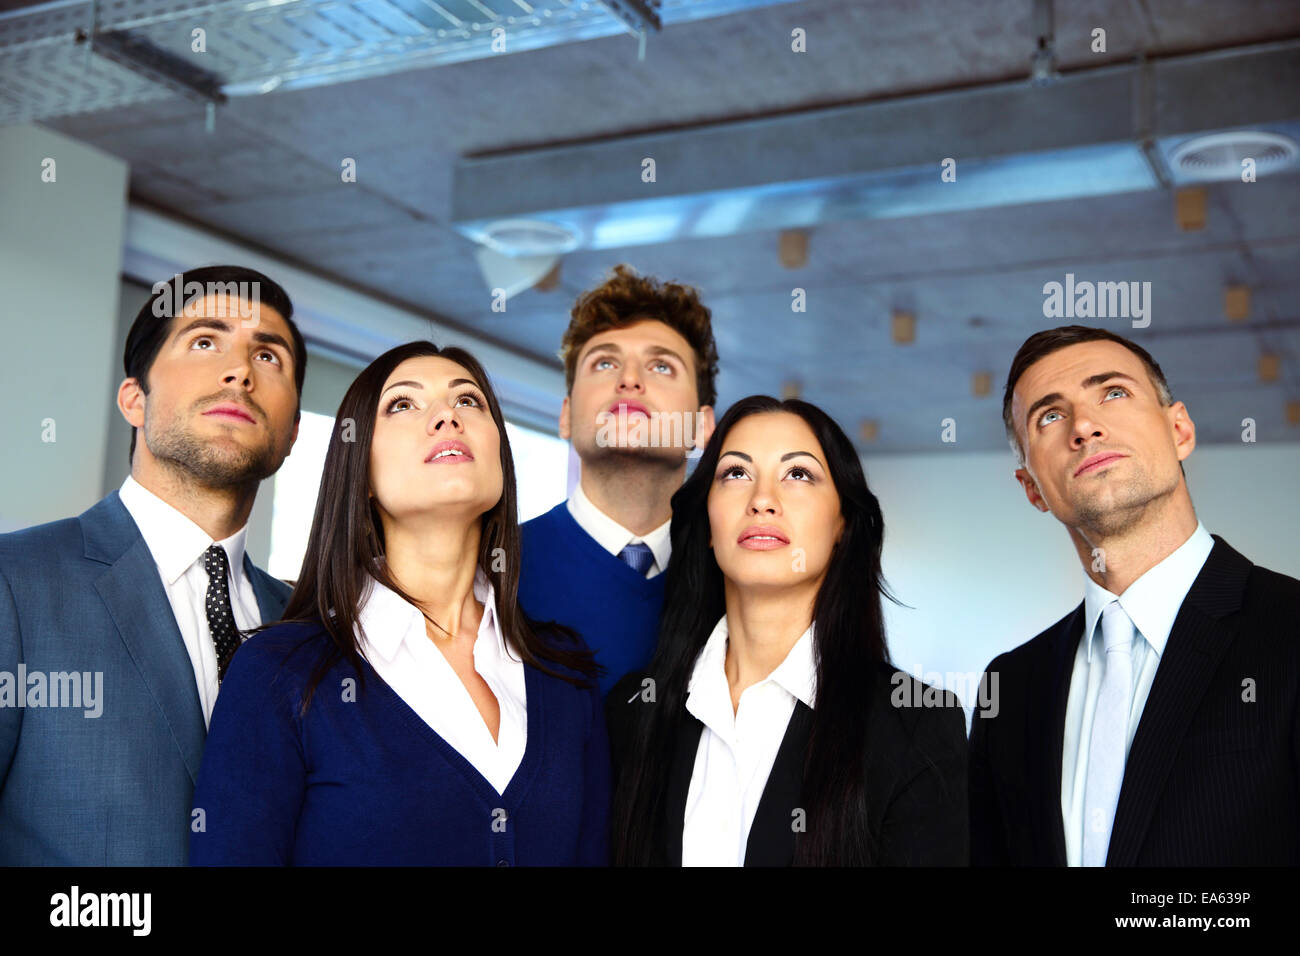 Business people looking up with dreaming expression Stock Photo